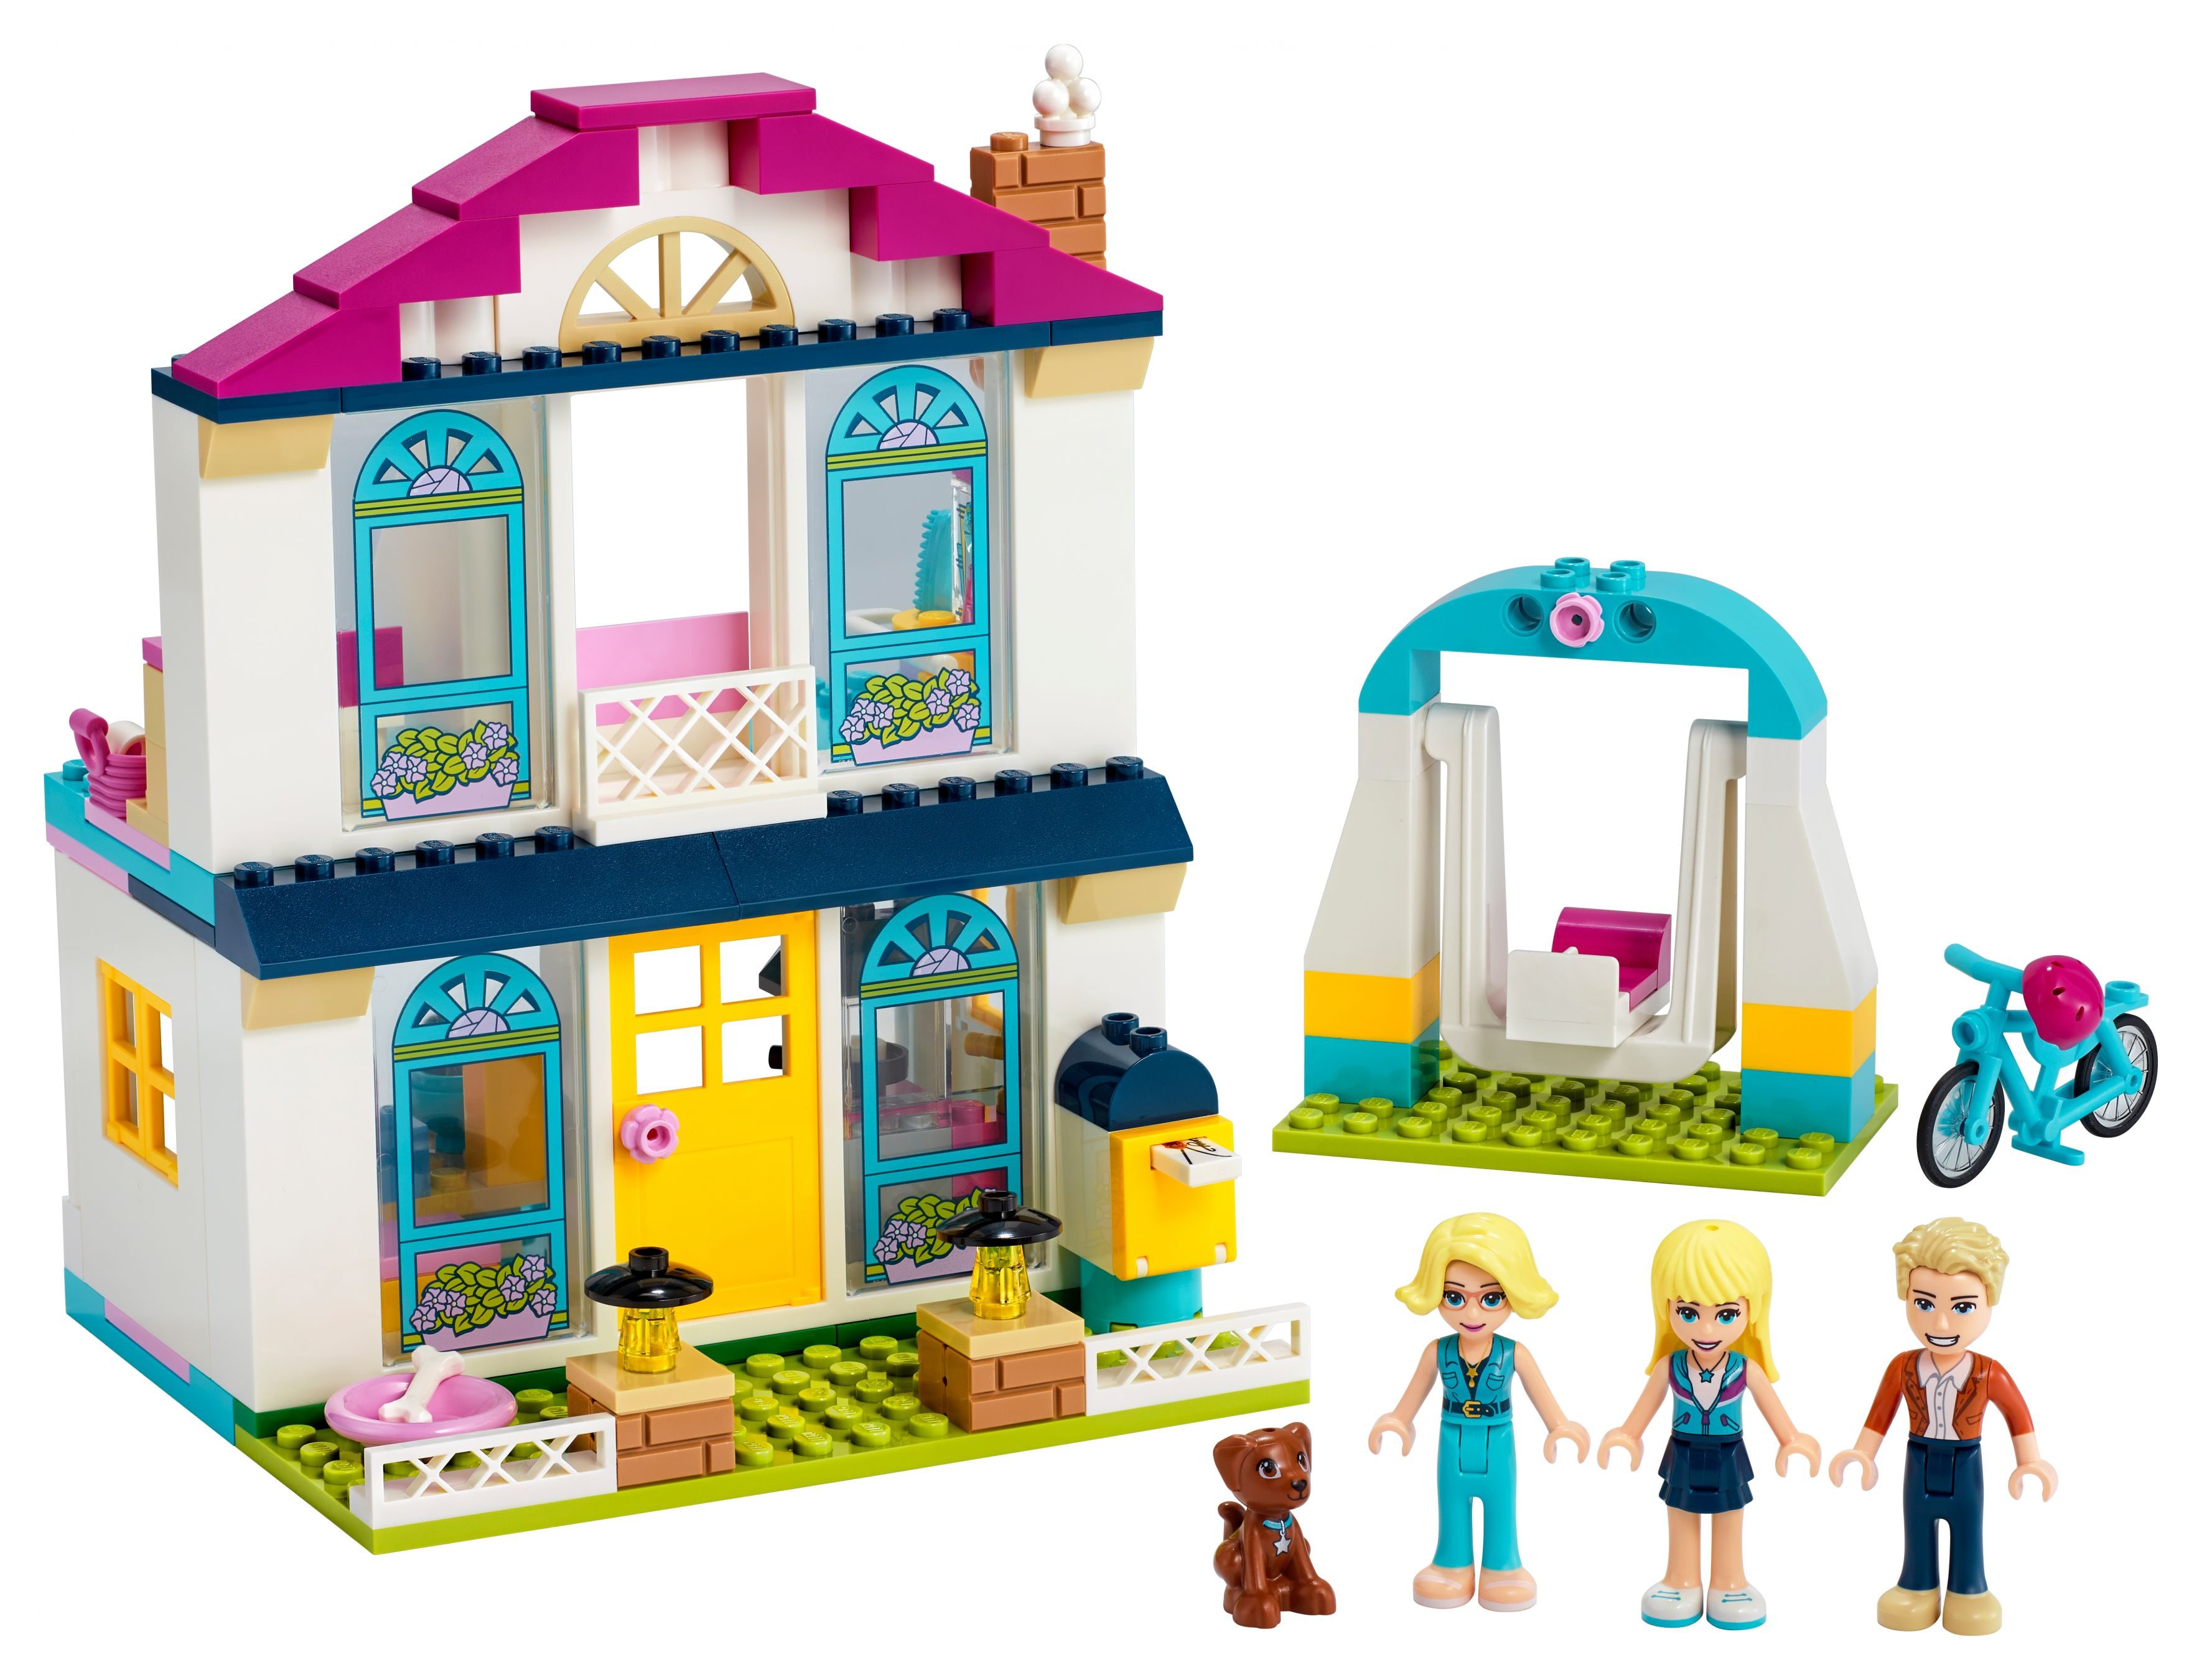 LEGO Friends 41398 4+ – Stephanies Familienhaus